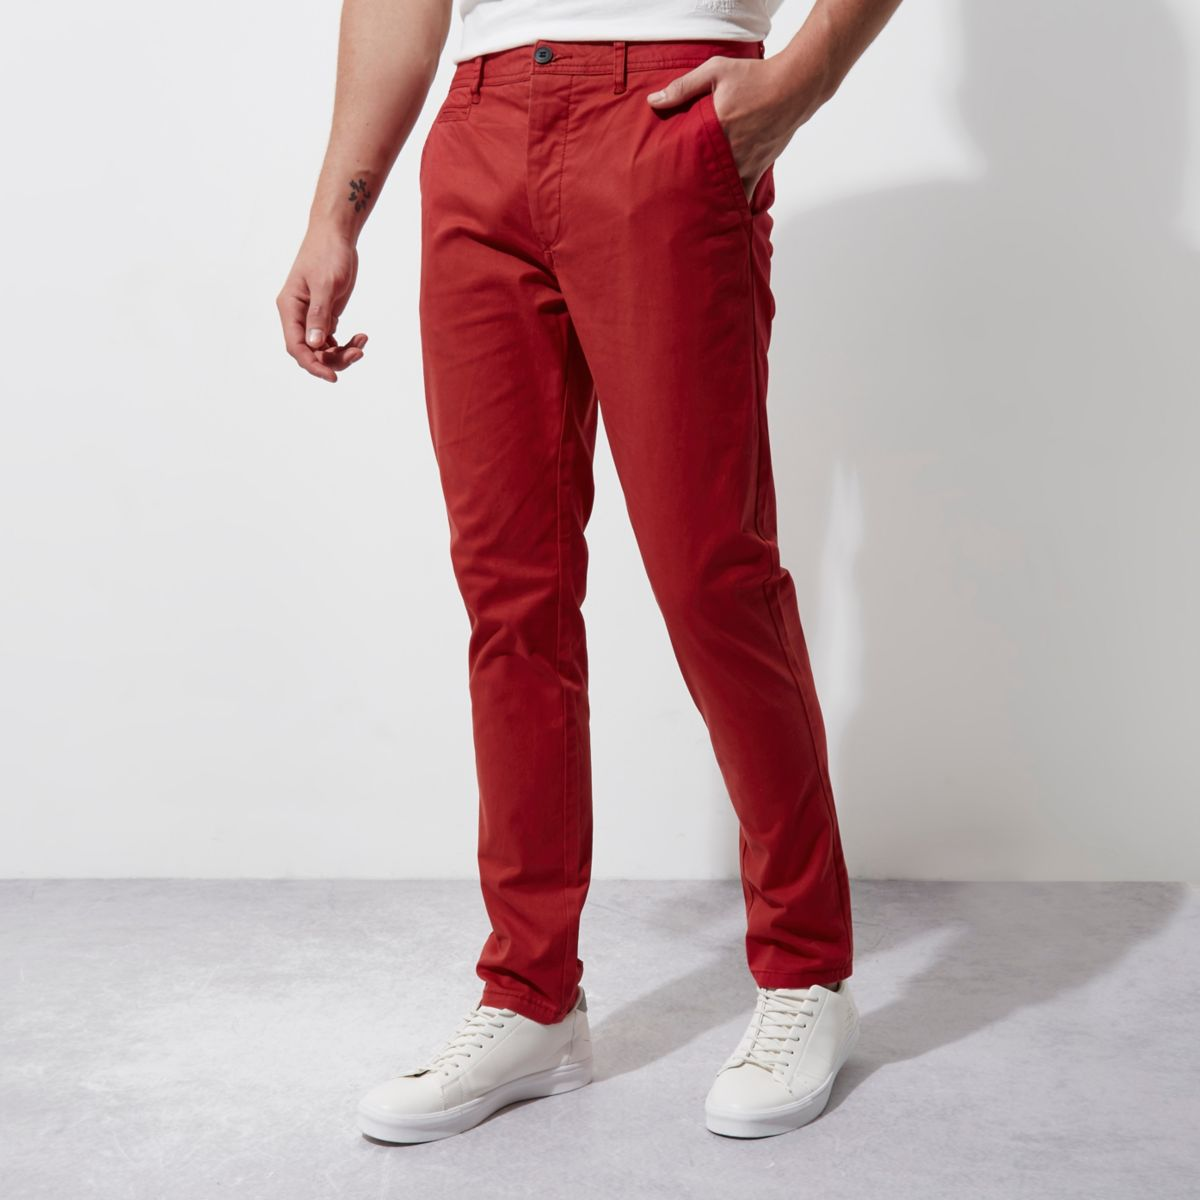 Red skinny chino pants